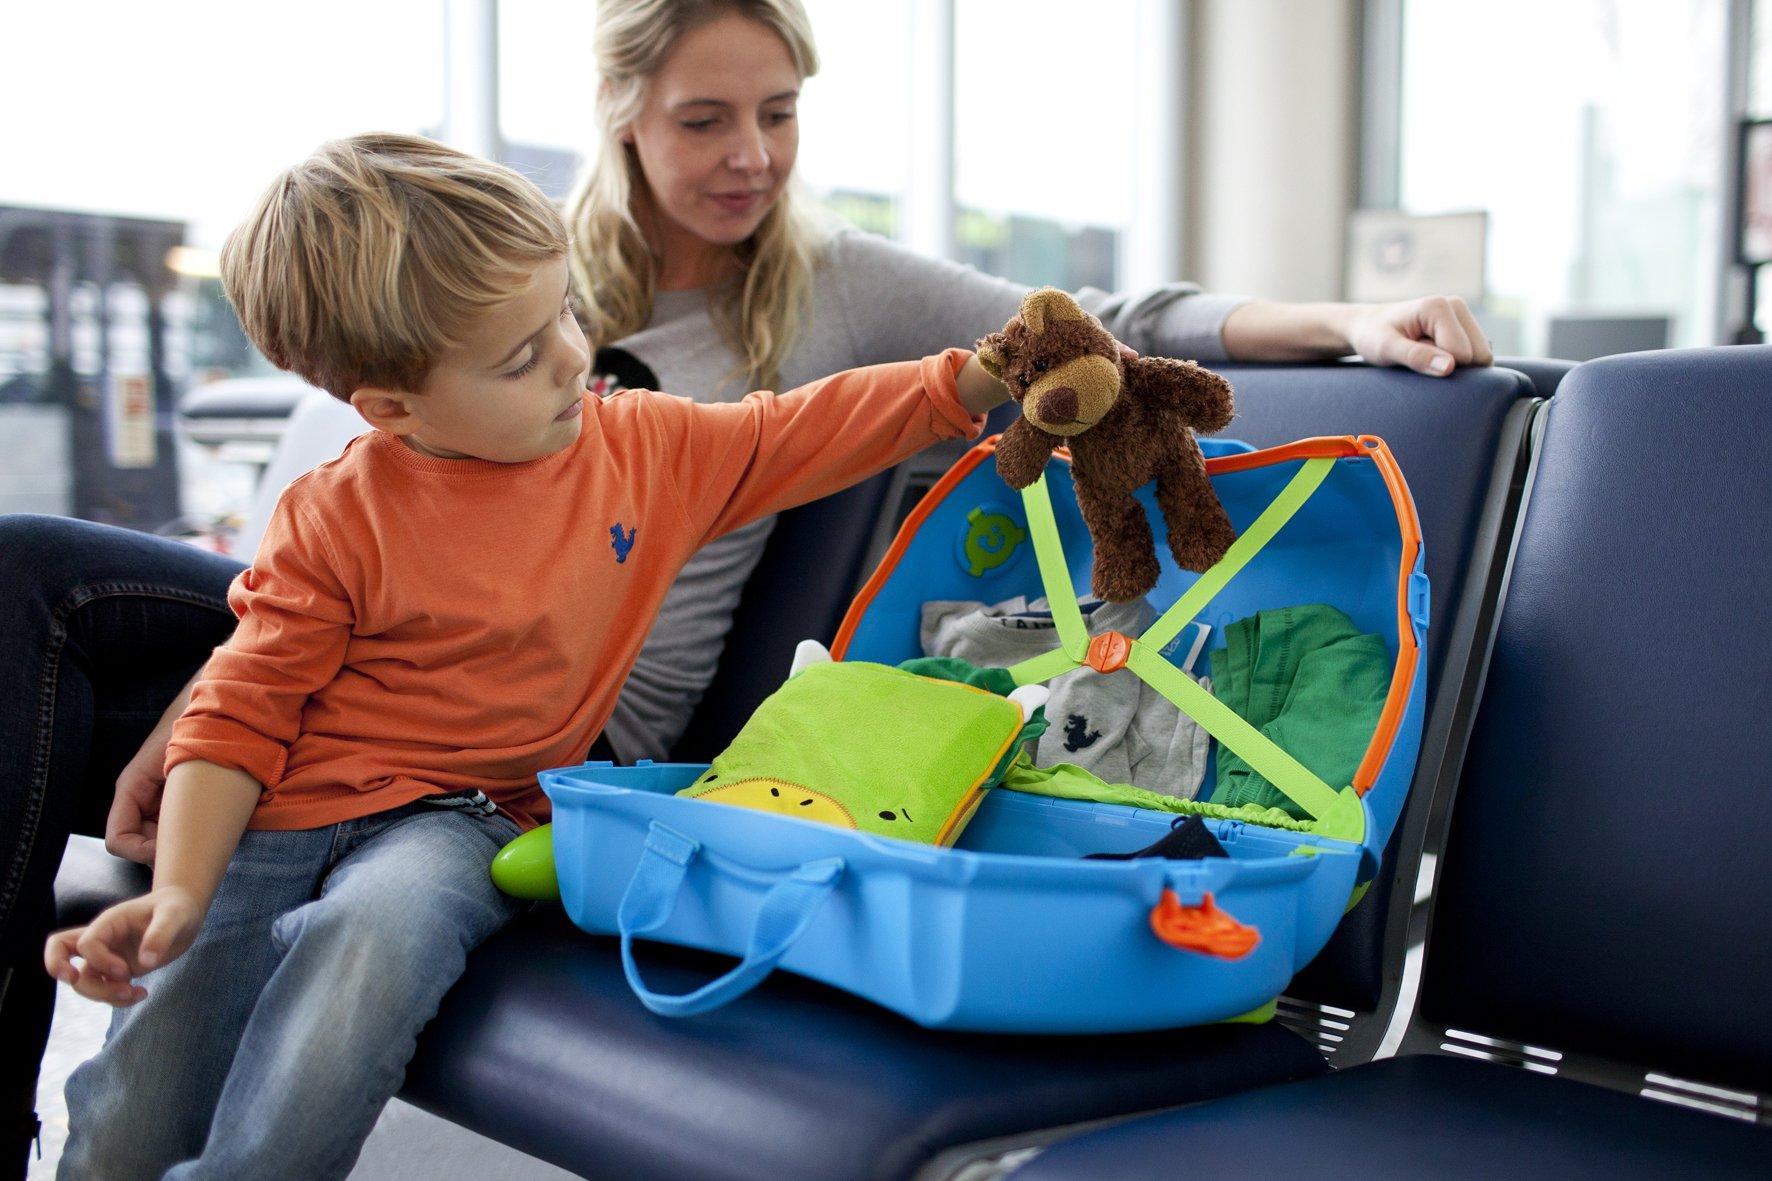 Trunki Original Kids Ride-On Suitcase and Carry-On Luggage - Terrance (Blue) by Trunki (Image #13)